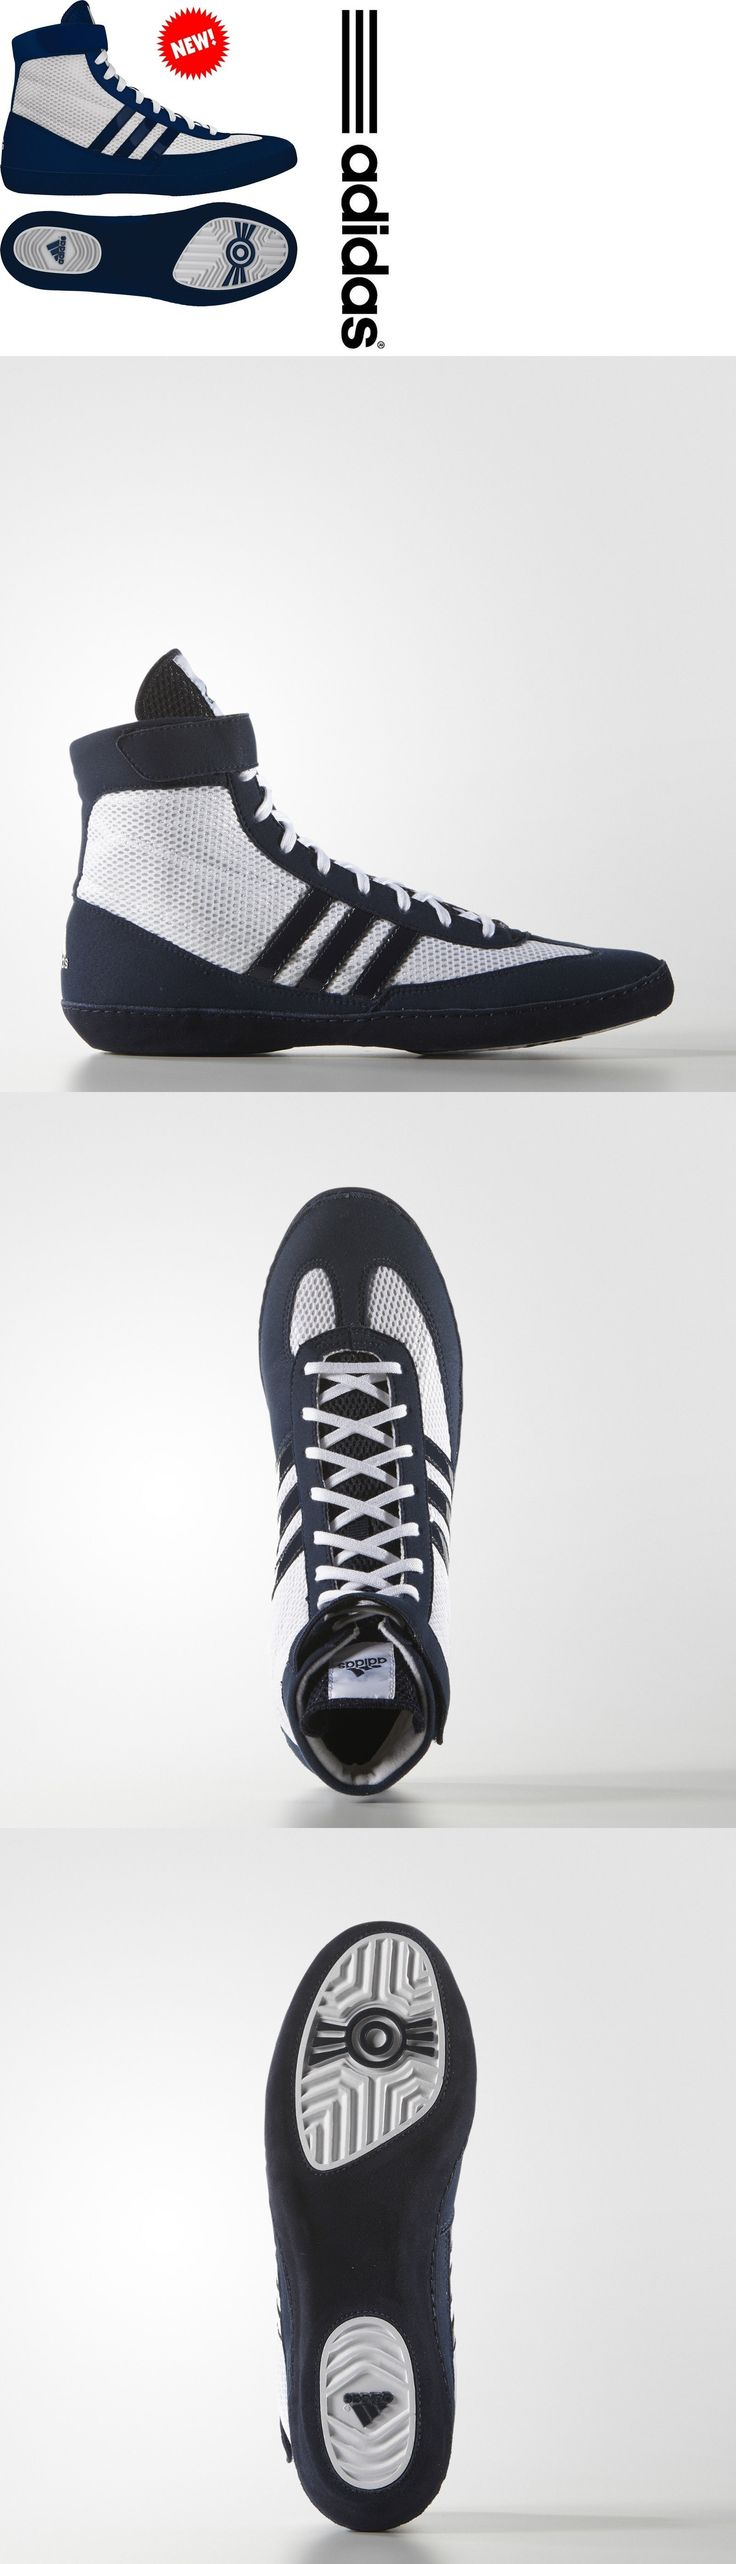 Accessories 36306: Kids Adidas Combat Speed 4 (Boots) Wrestling Shoes Kinder Ringerschuhe Boxing -> BUY IT NOW ONLY: $49.99 on eBay!